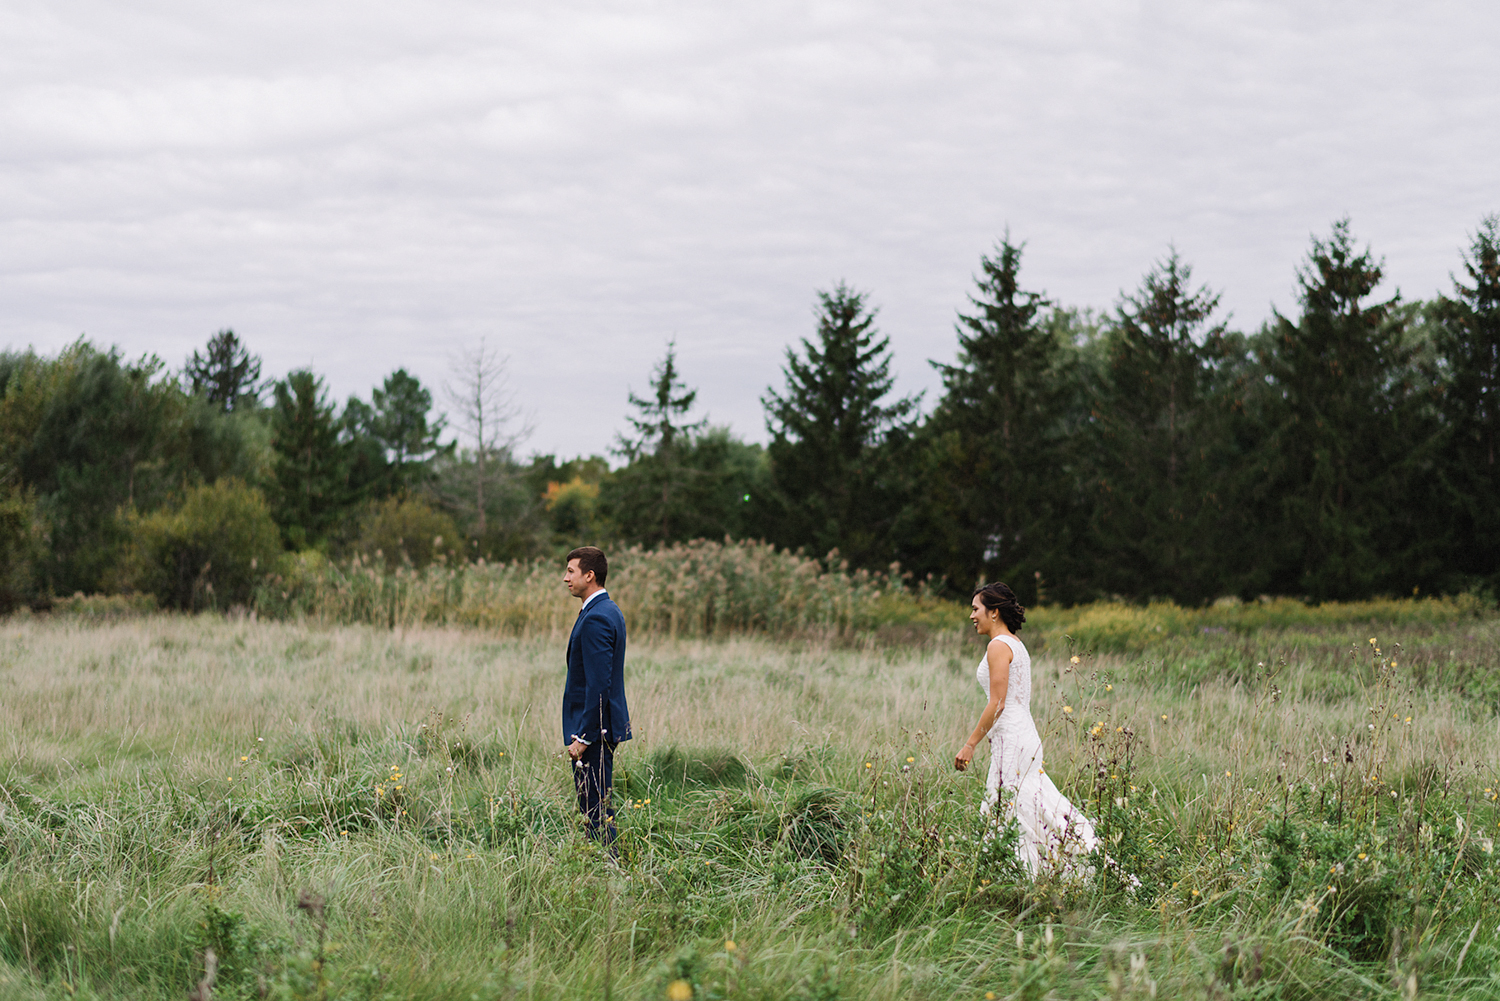 bellamere-winery-cottage-first-look-bride-walking-up-cinetmatic-best-torontos-wedding-photographers-candid-documentary-style-photography-london-ontario-winery-wedding-inspiration.jpg